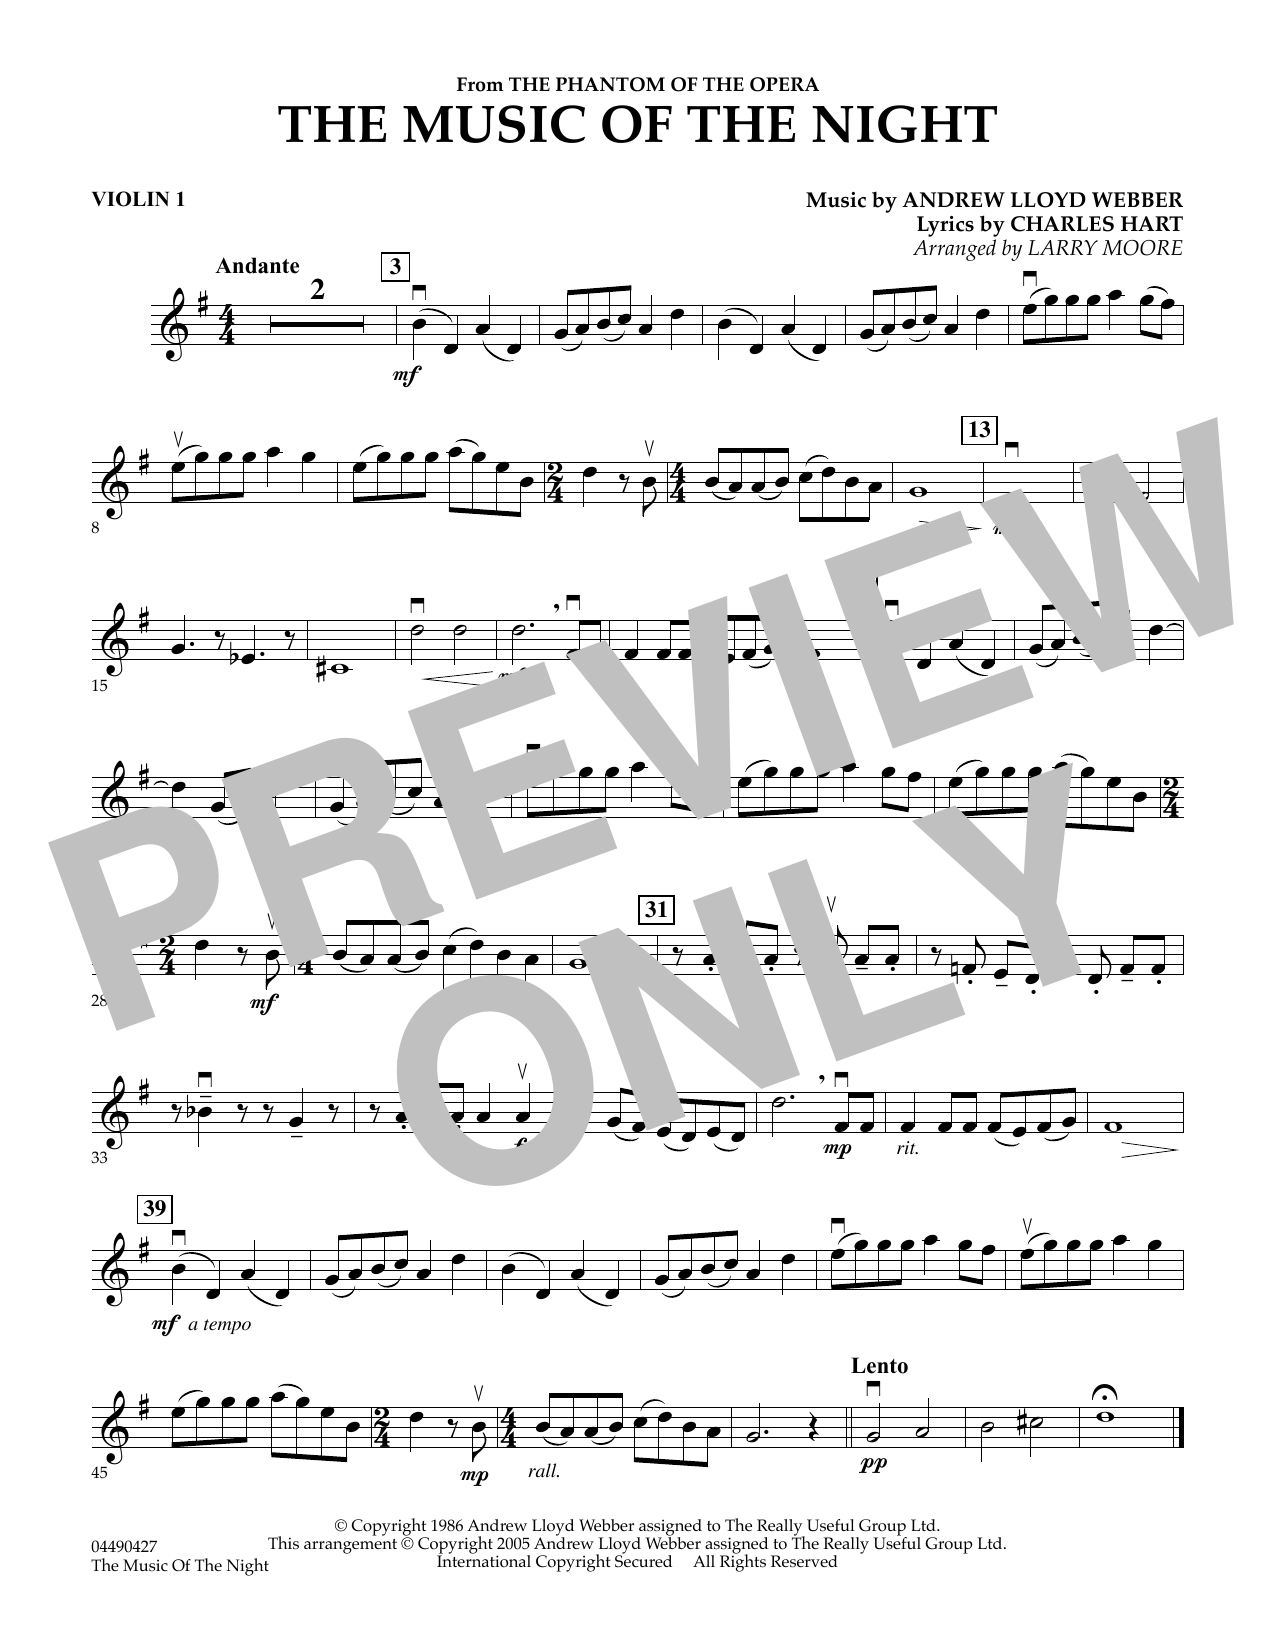 Larry Moore The Music of the Night (from The Phantom of the Opera) - Violin 1 sheet music notes and chords. Download Printable PDF.